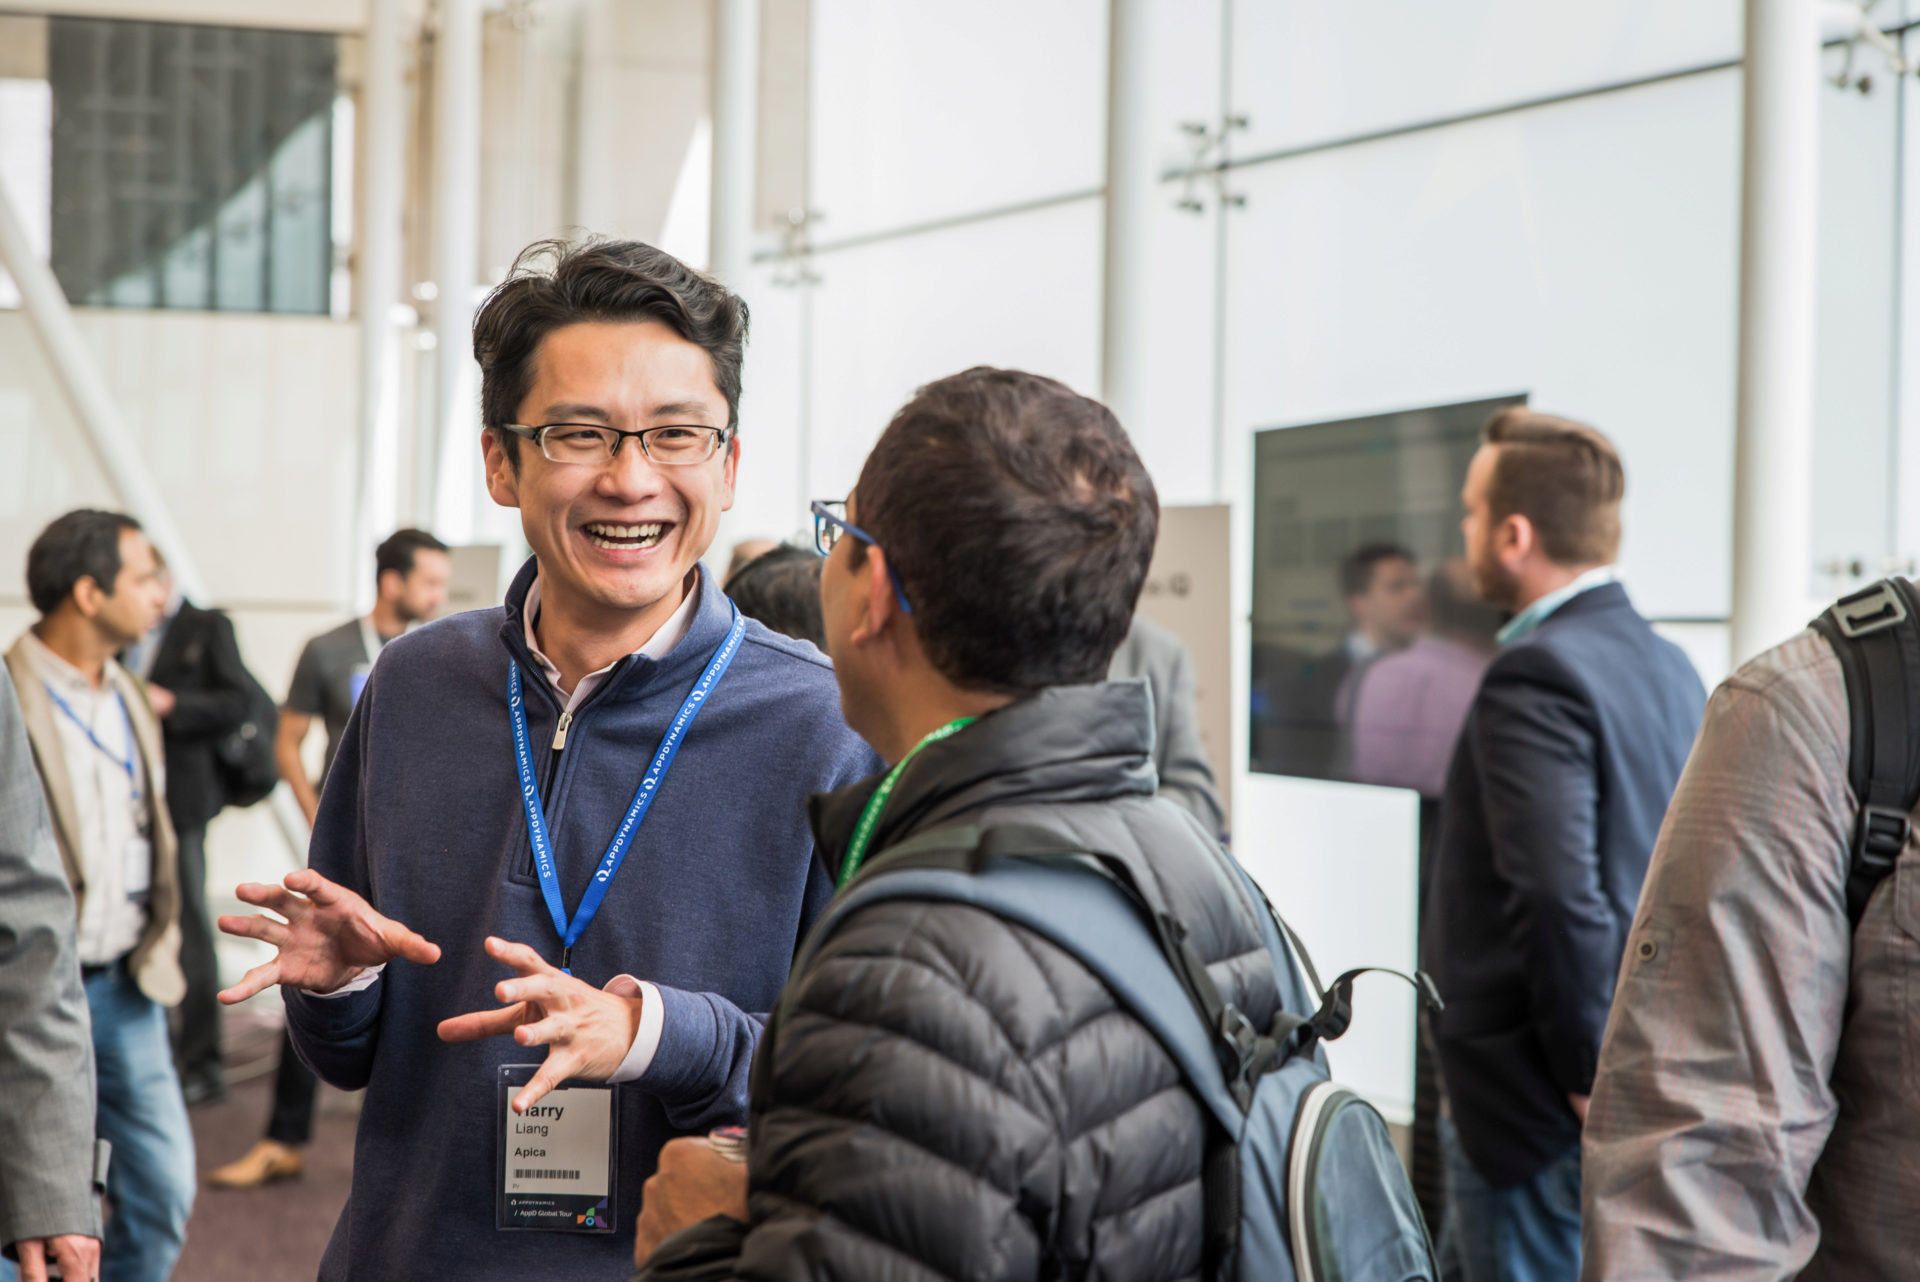 OHM_AppDynamics_SF_Top_Selects-6198.jpg